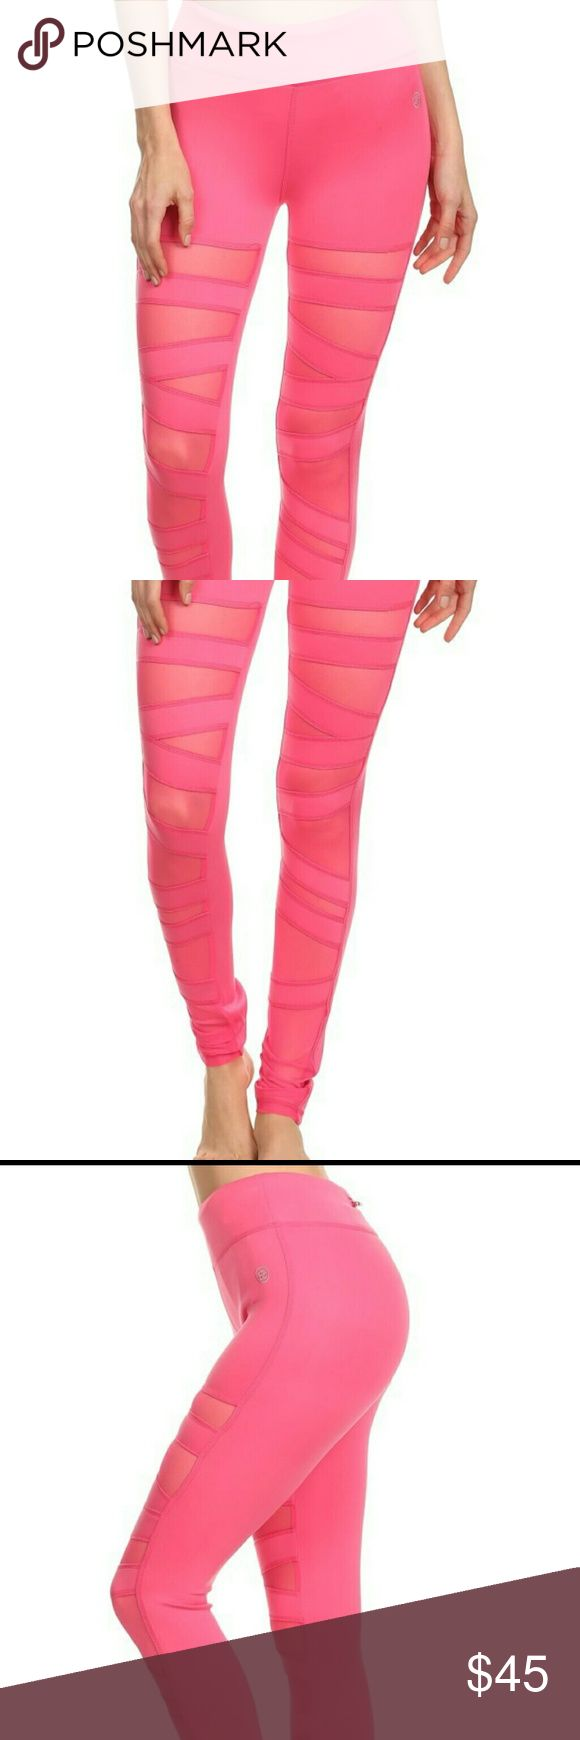 New pink Ballerina workout yoga leggings Awesome NEW pink Ballerina style workout leggings, with four way stretch, wicking, and flat seems for extra comfort.  Perfect for the gym, yoga, running , weight lifting or every day wear! sizes available S, M, L , XL . leggings run two sizes smaller. Pants Leggings